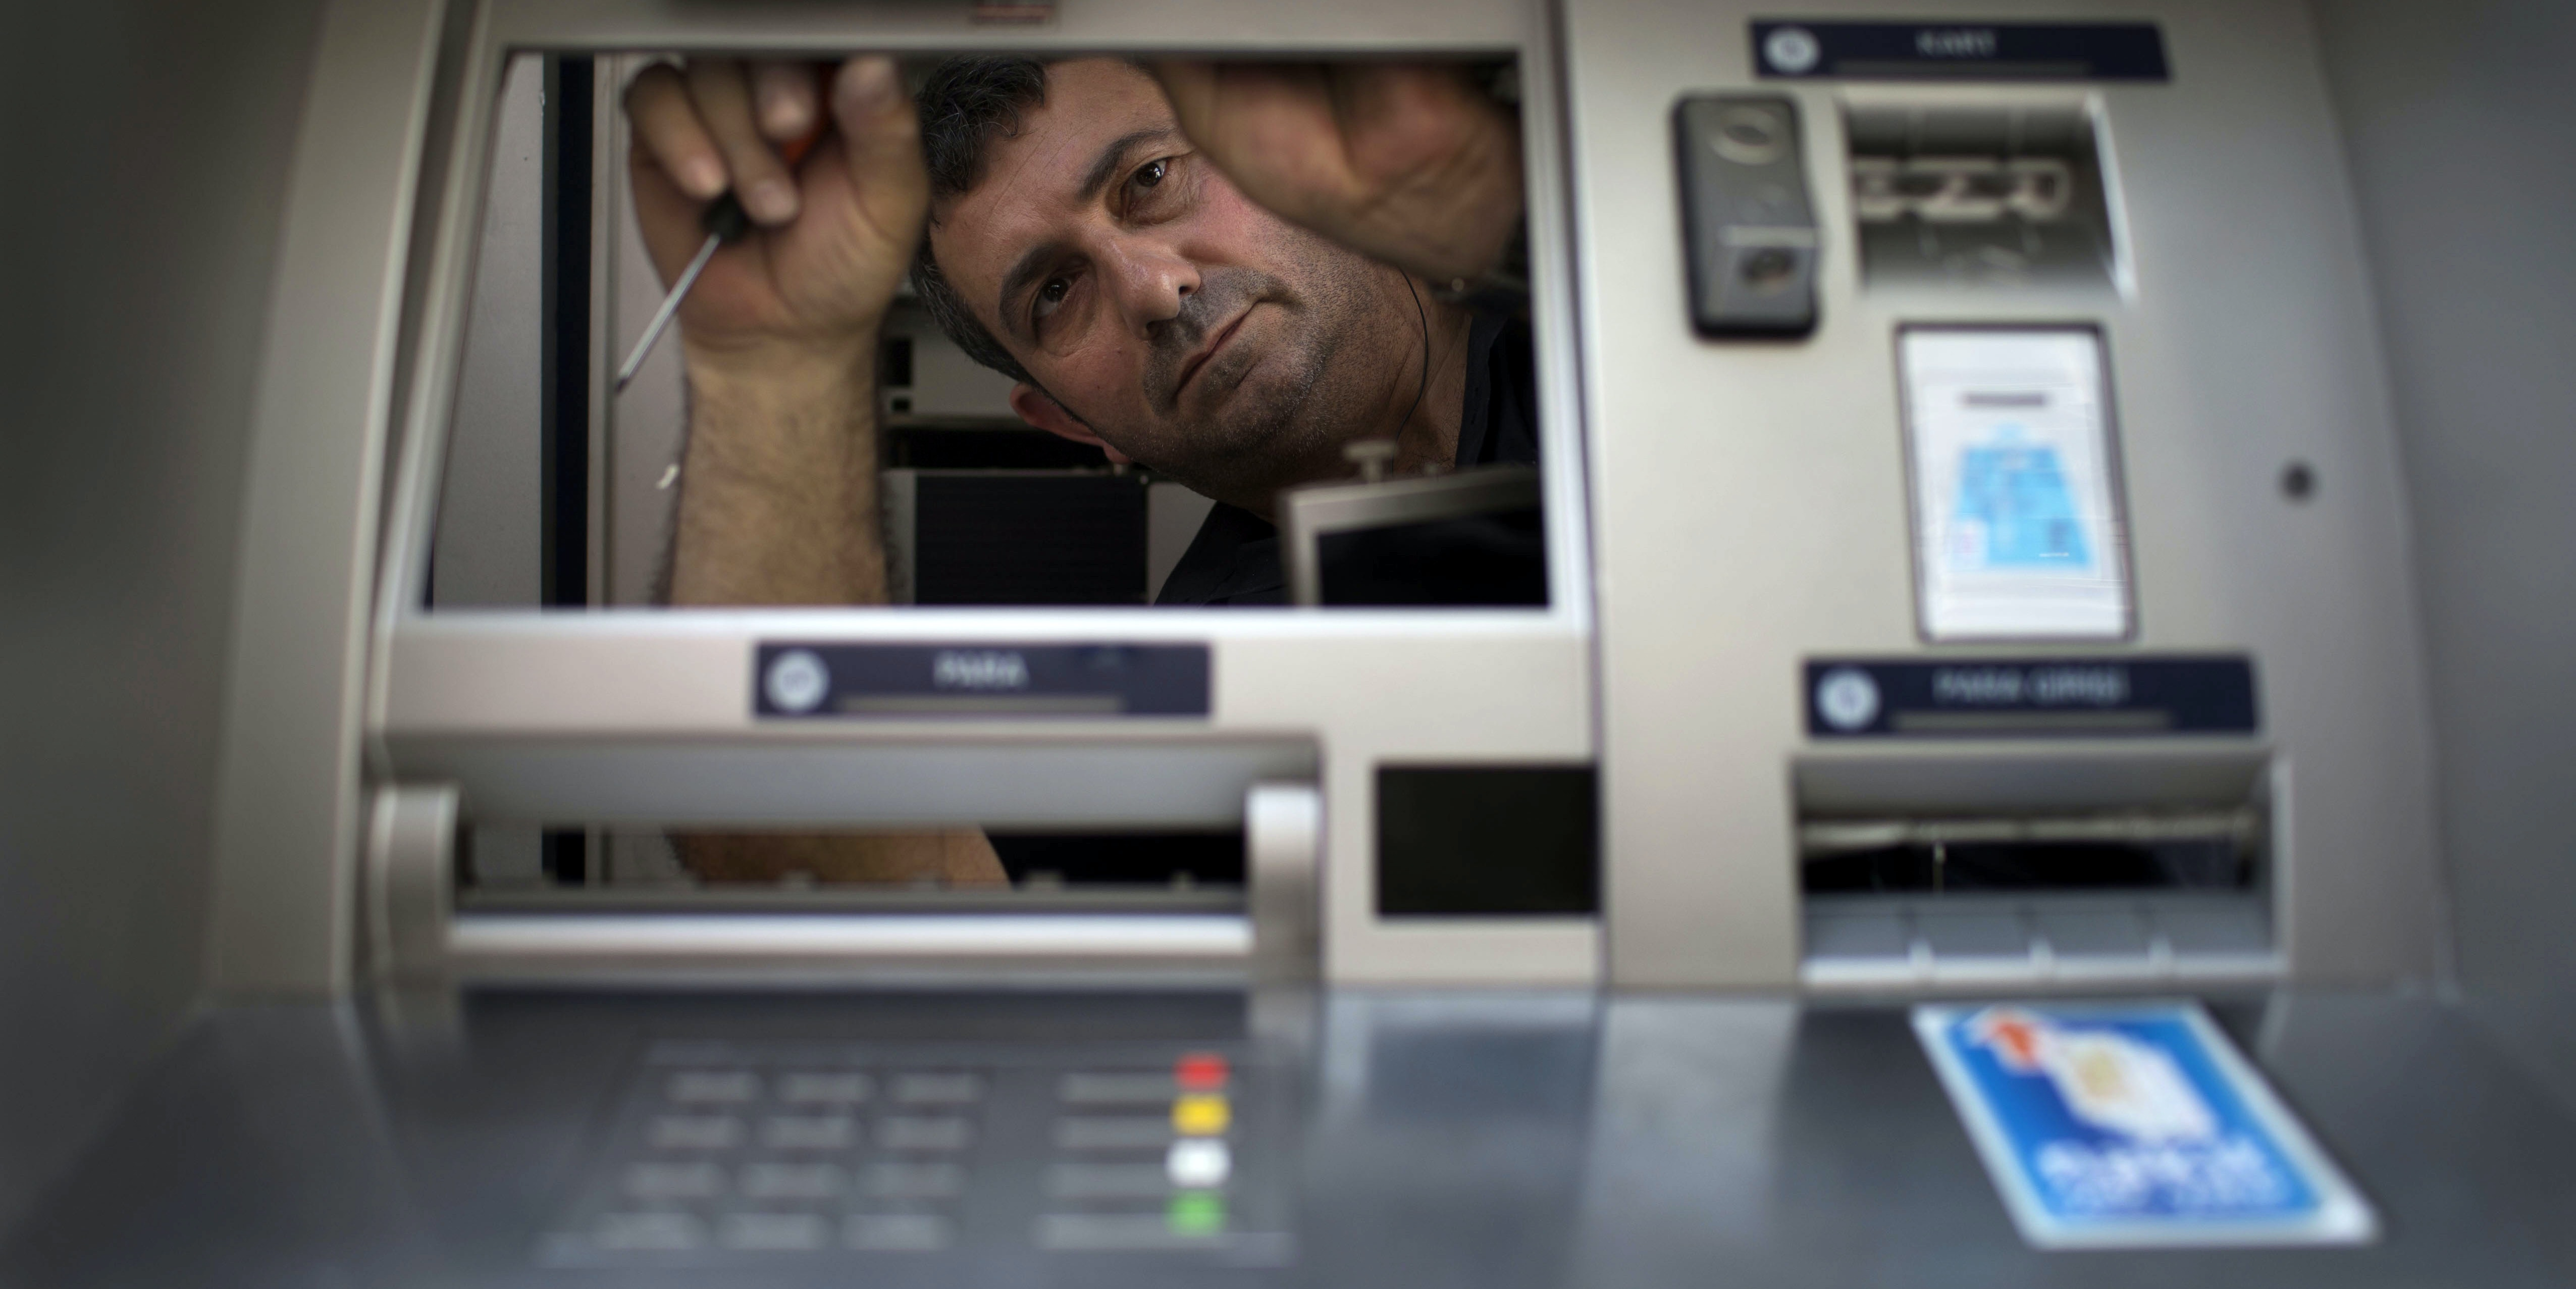 istanbul turkey june 05 technicians fix atm machines that were damaged during riots after anti g jpeg